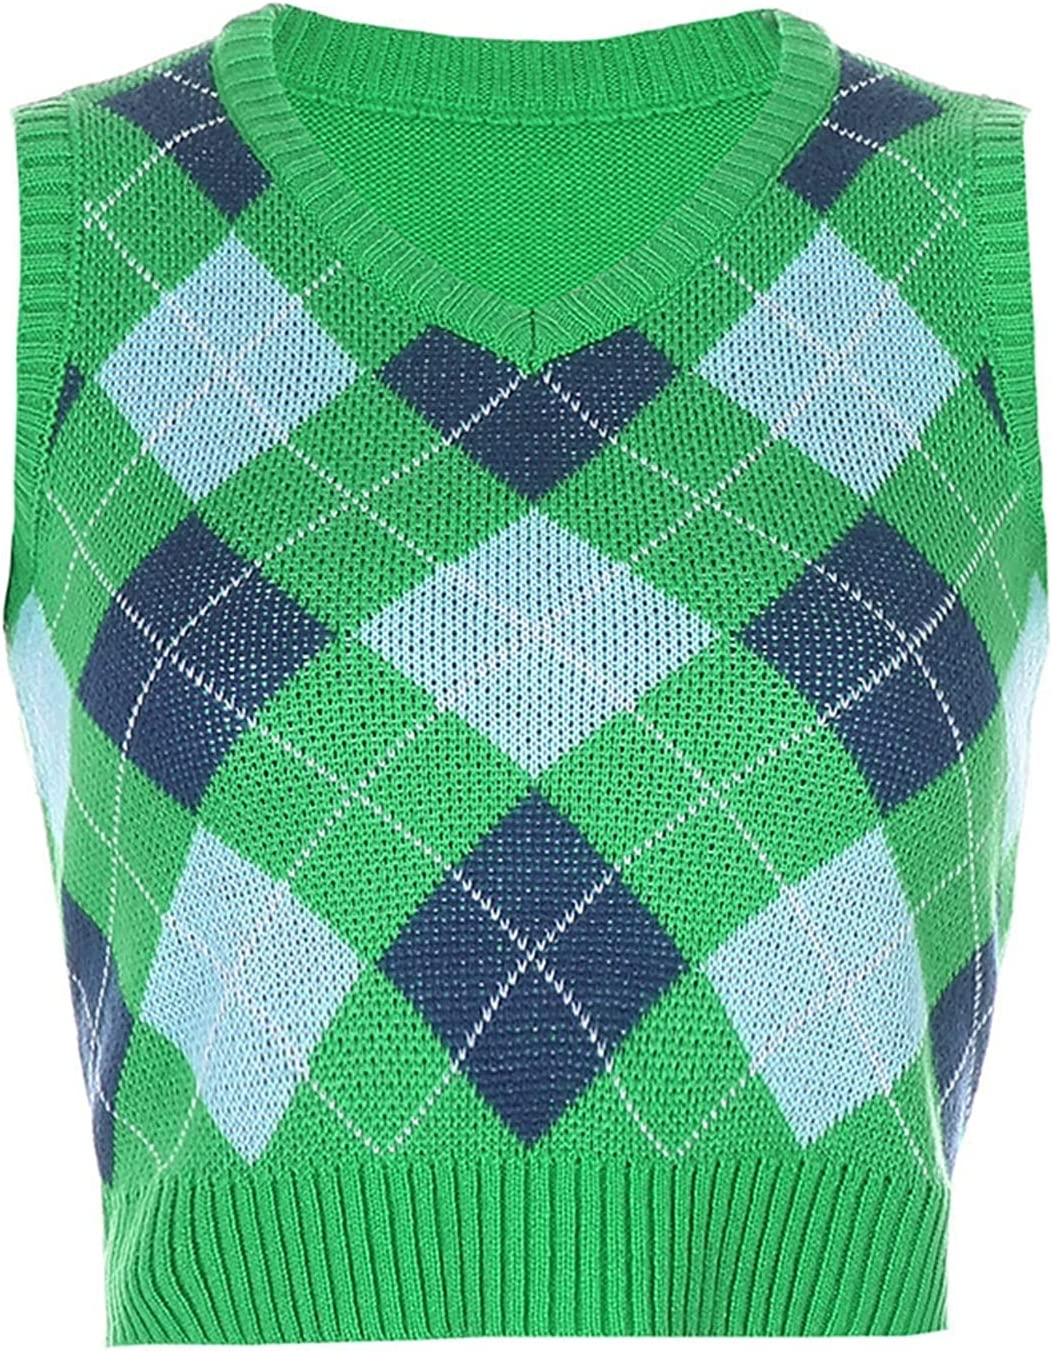 V Neck Vintage Argyle Sweater Vest Women Black Sleeveless Plaid Knitted Crop Sweaters Casual Autumn (Color : 10-Green, Size : Small)